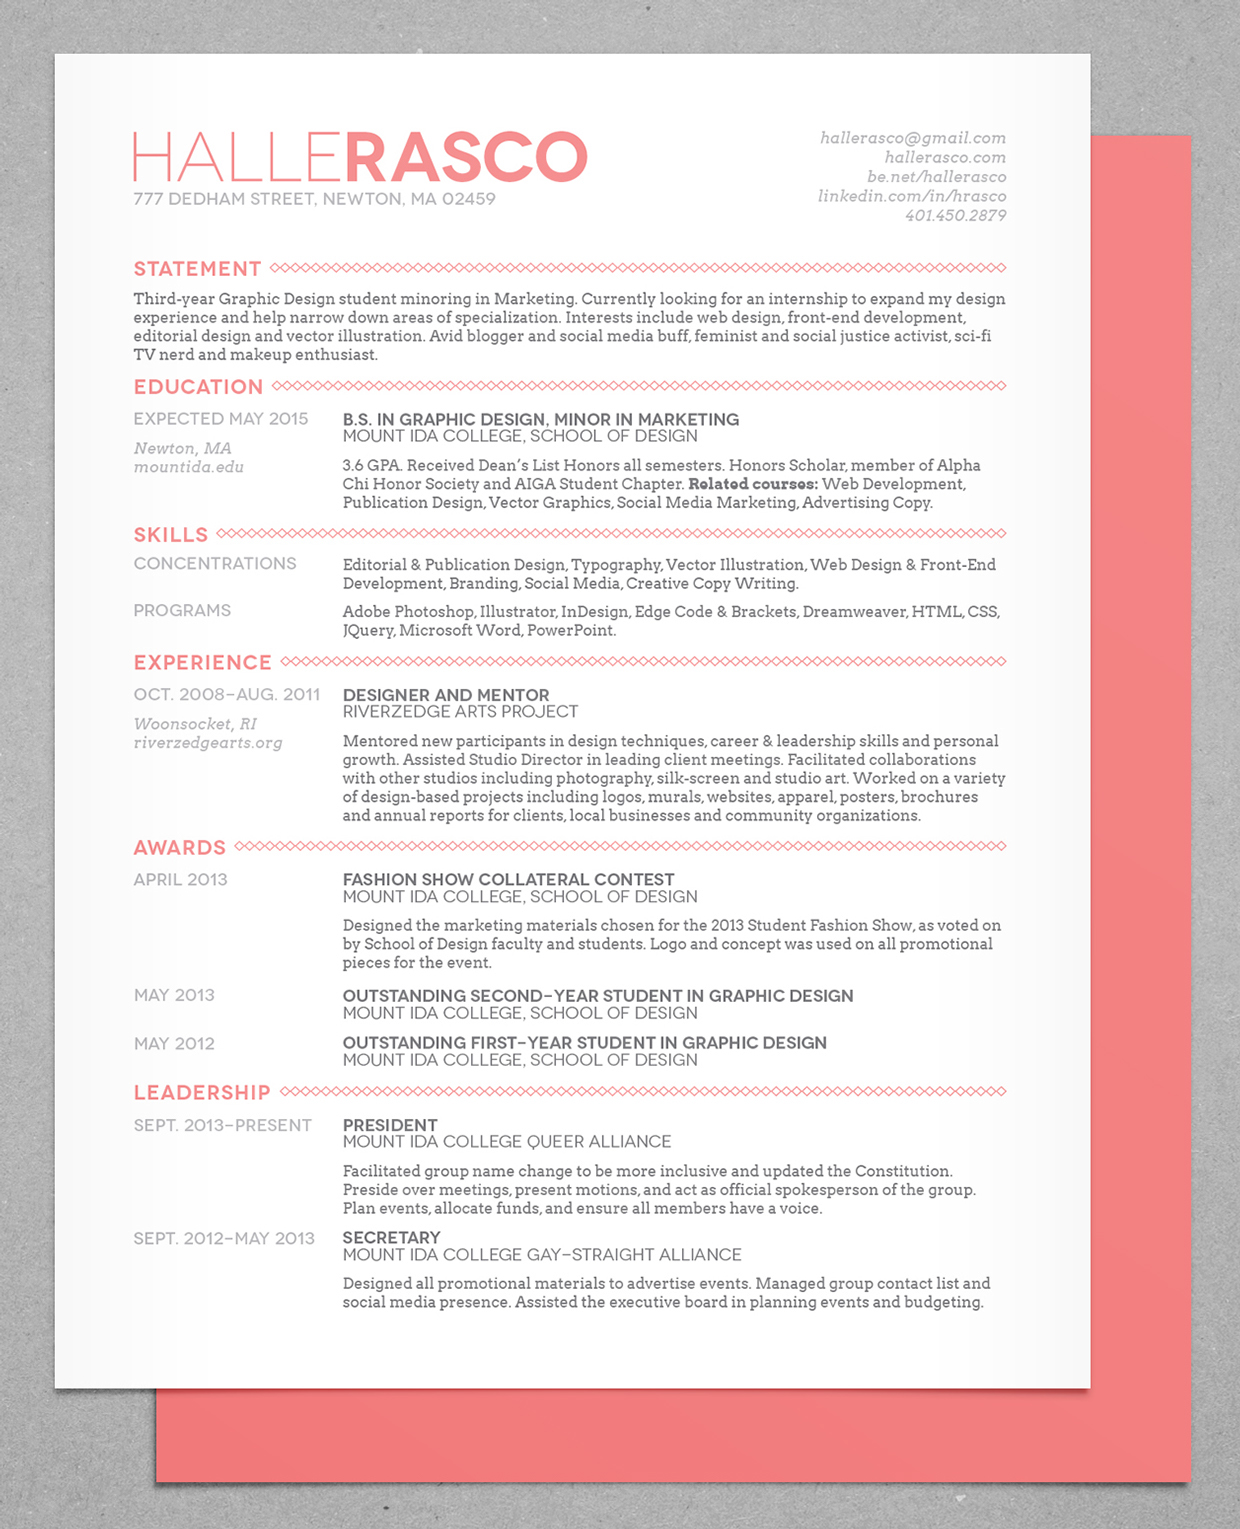 standout resume templates sample entry level resumes how to make your cv stand out visually sample customer service resume by halle rasco how to make your cv stand out visuallyhtml standout resume templates